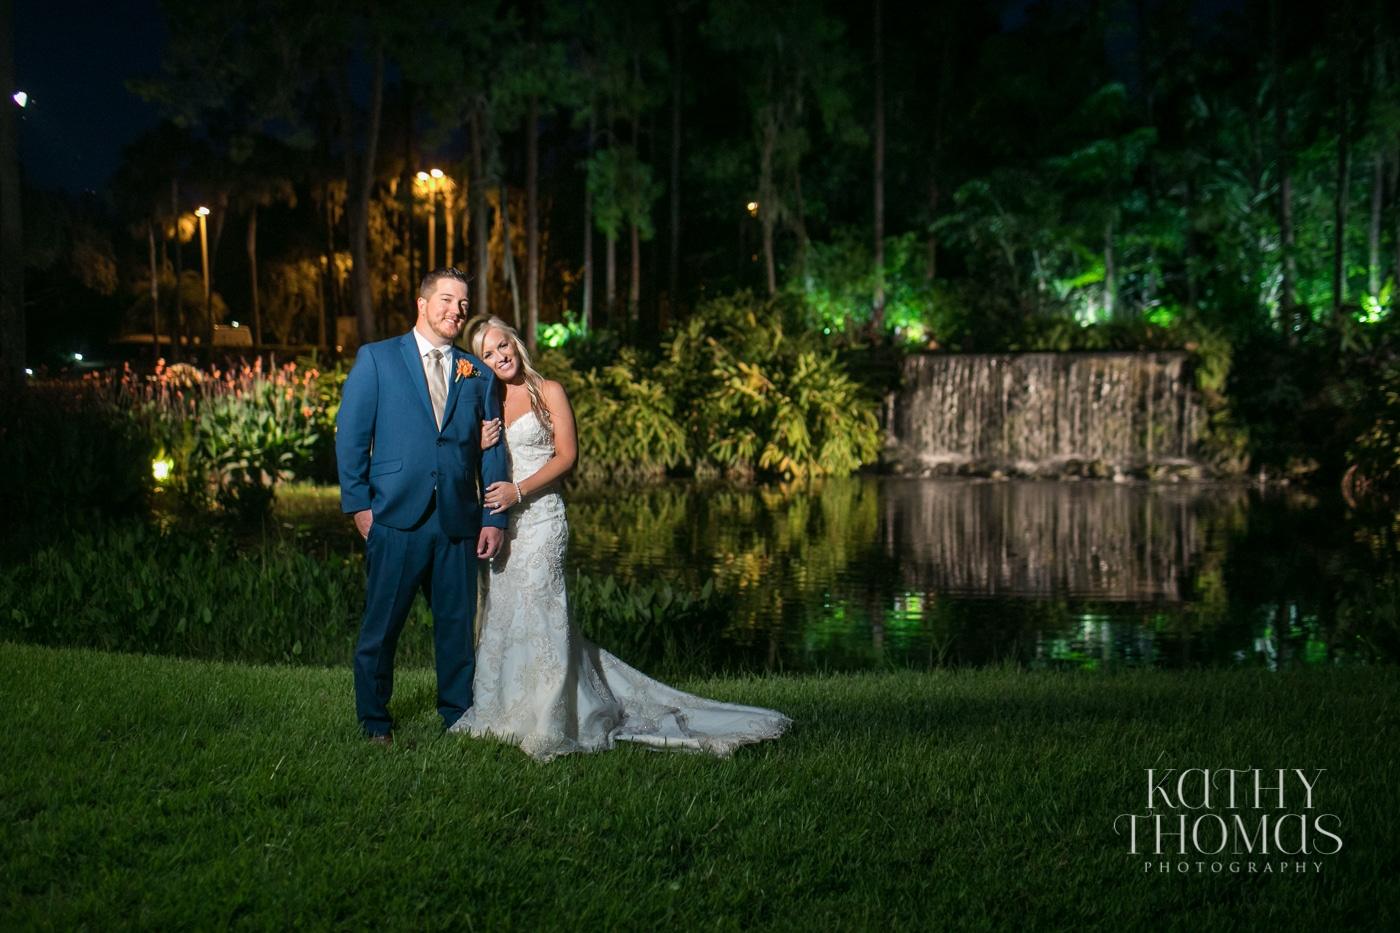 Bride and groom next to golf course waterfall at night